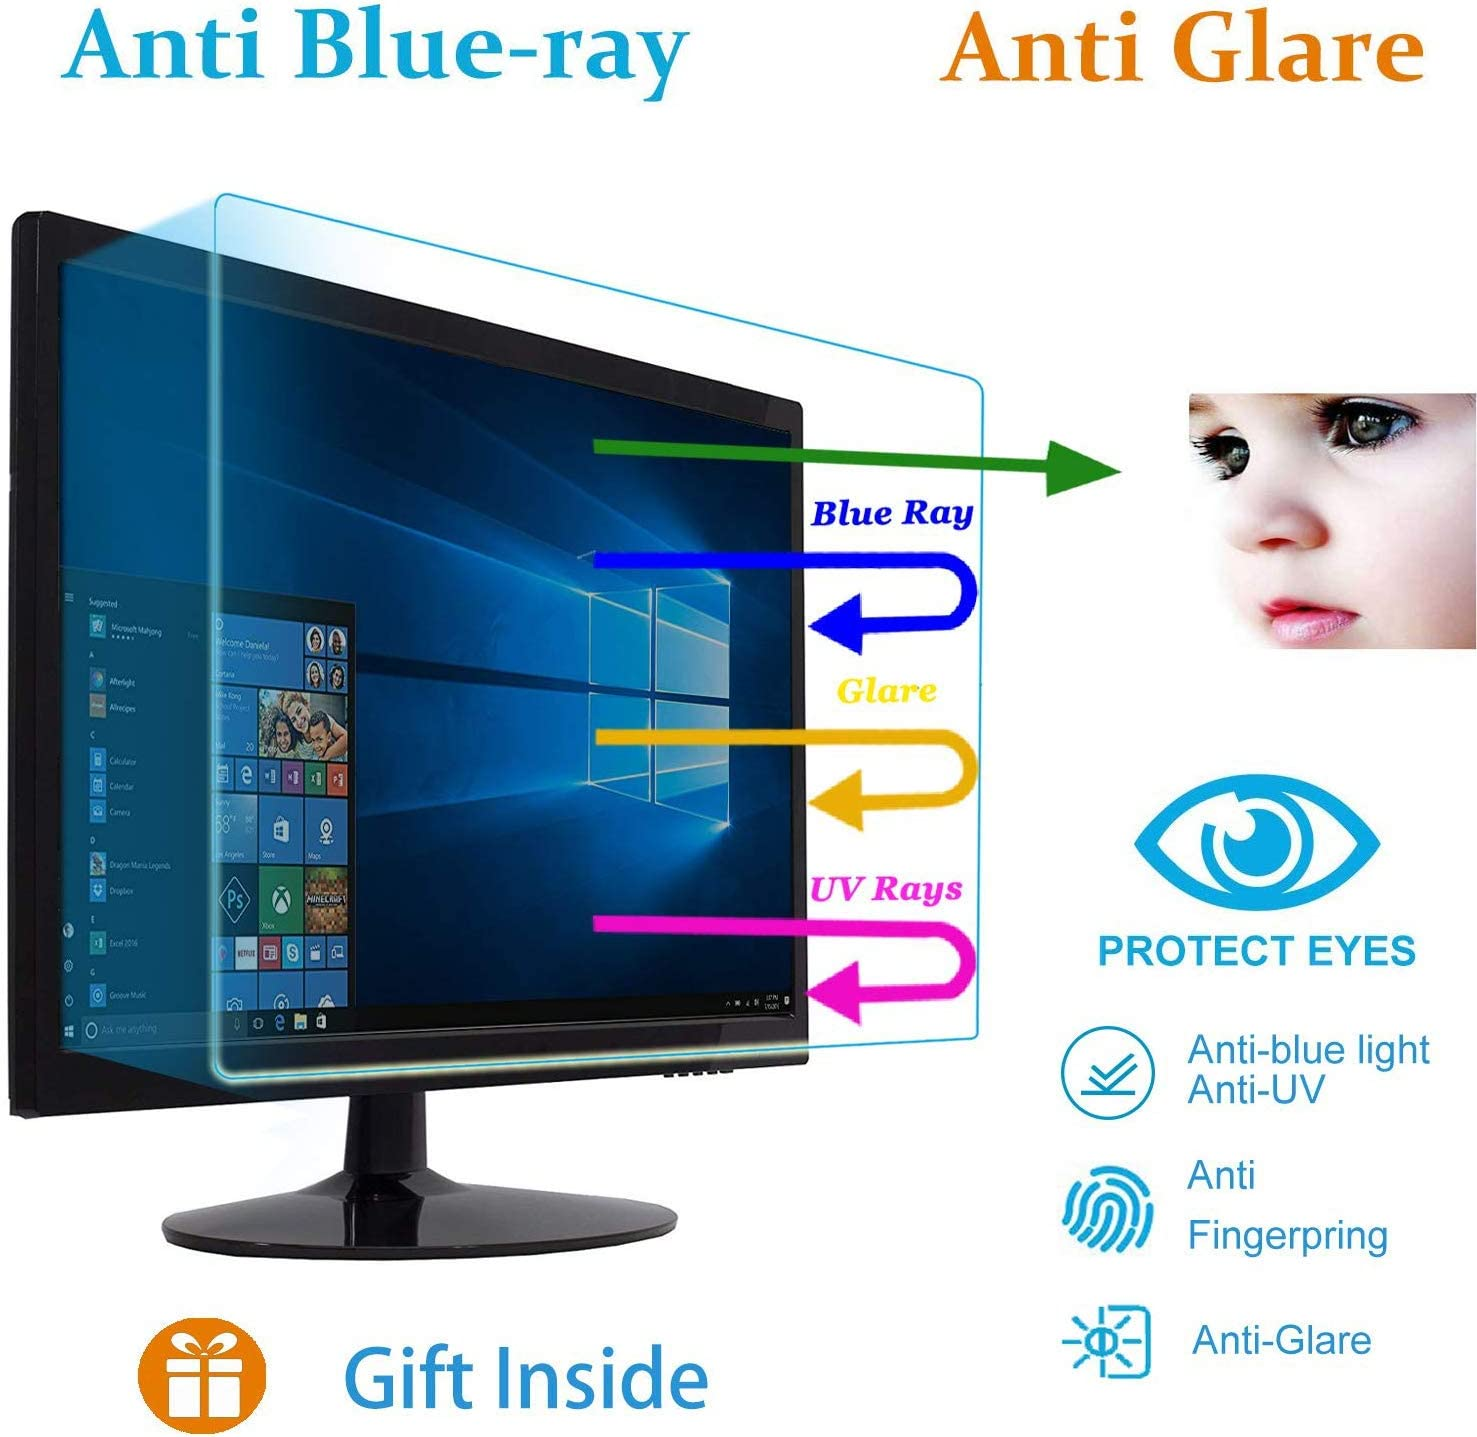 "21.5"" Eyes Protection Anti Blue Light Anti Glare Screen Protector fit 21.5 Inches Widescreen Desktop Monitor Screen (18.7"" x 10.6""). Reduces Digital Eye Strain Help You Sleep Better"